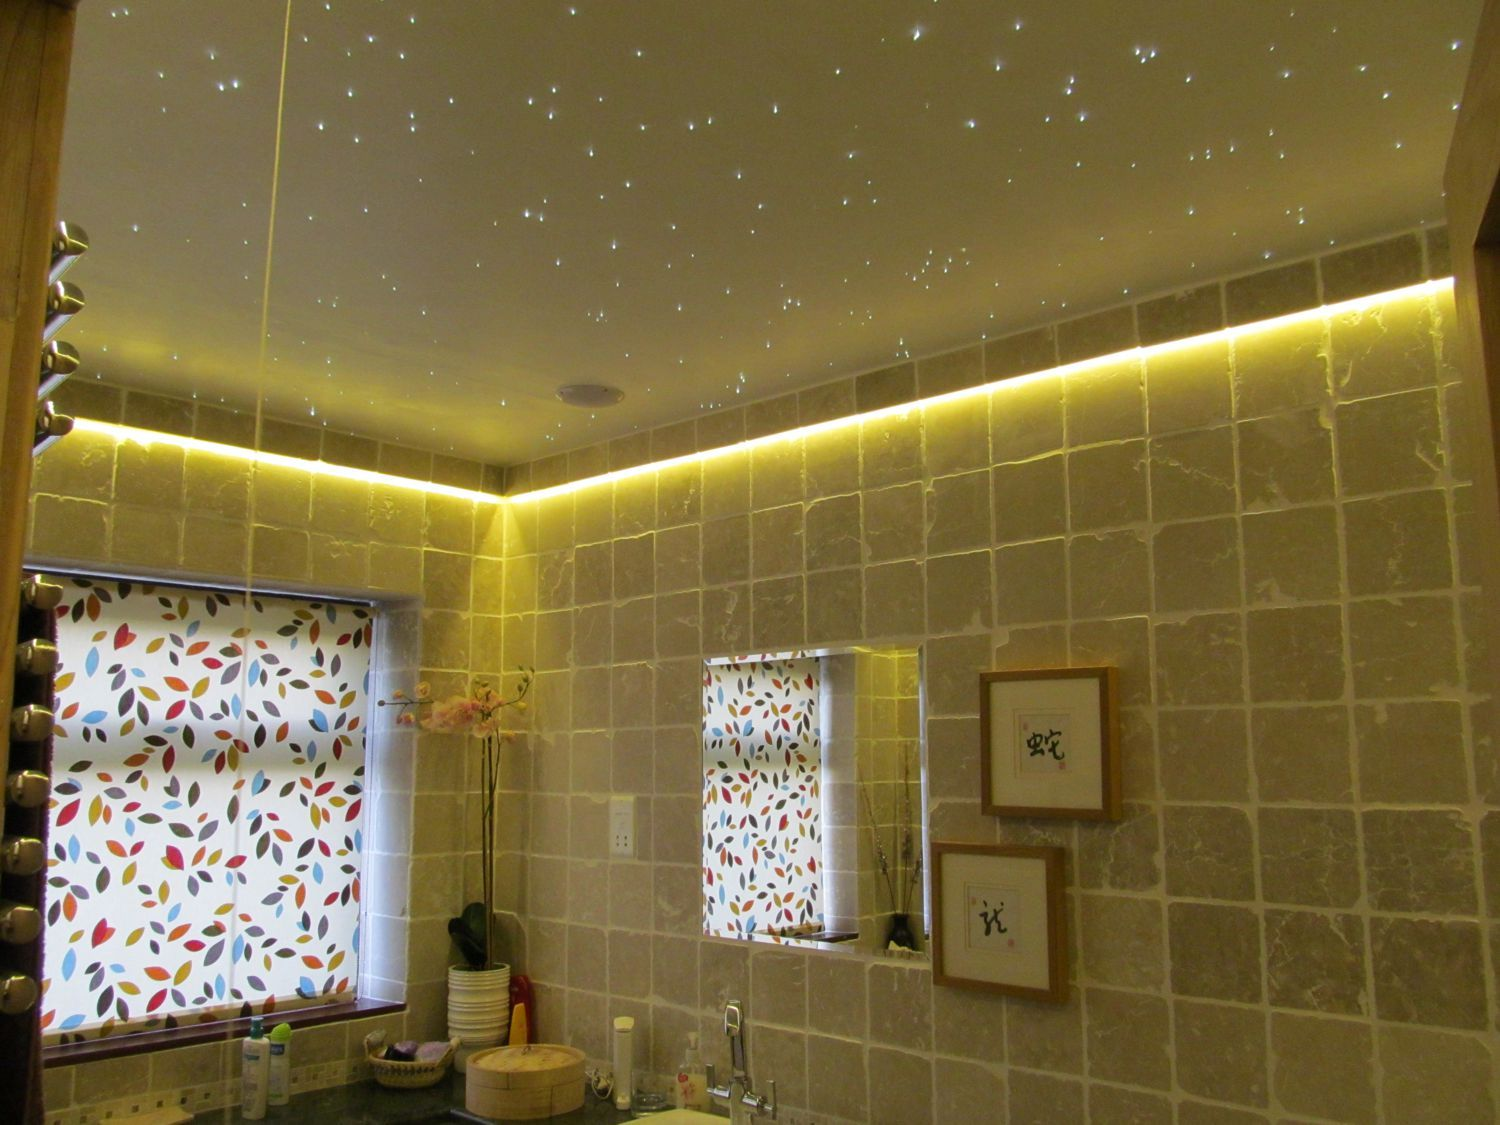 coved ceiling lighting dropped ceiling concealed led tape colour changing coving lighting with starfield on bathroom ceiling